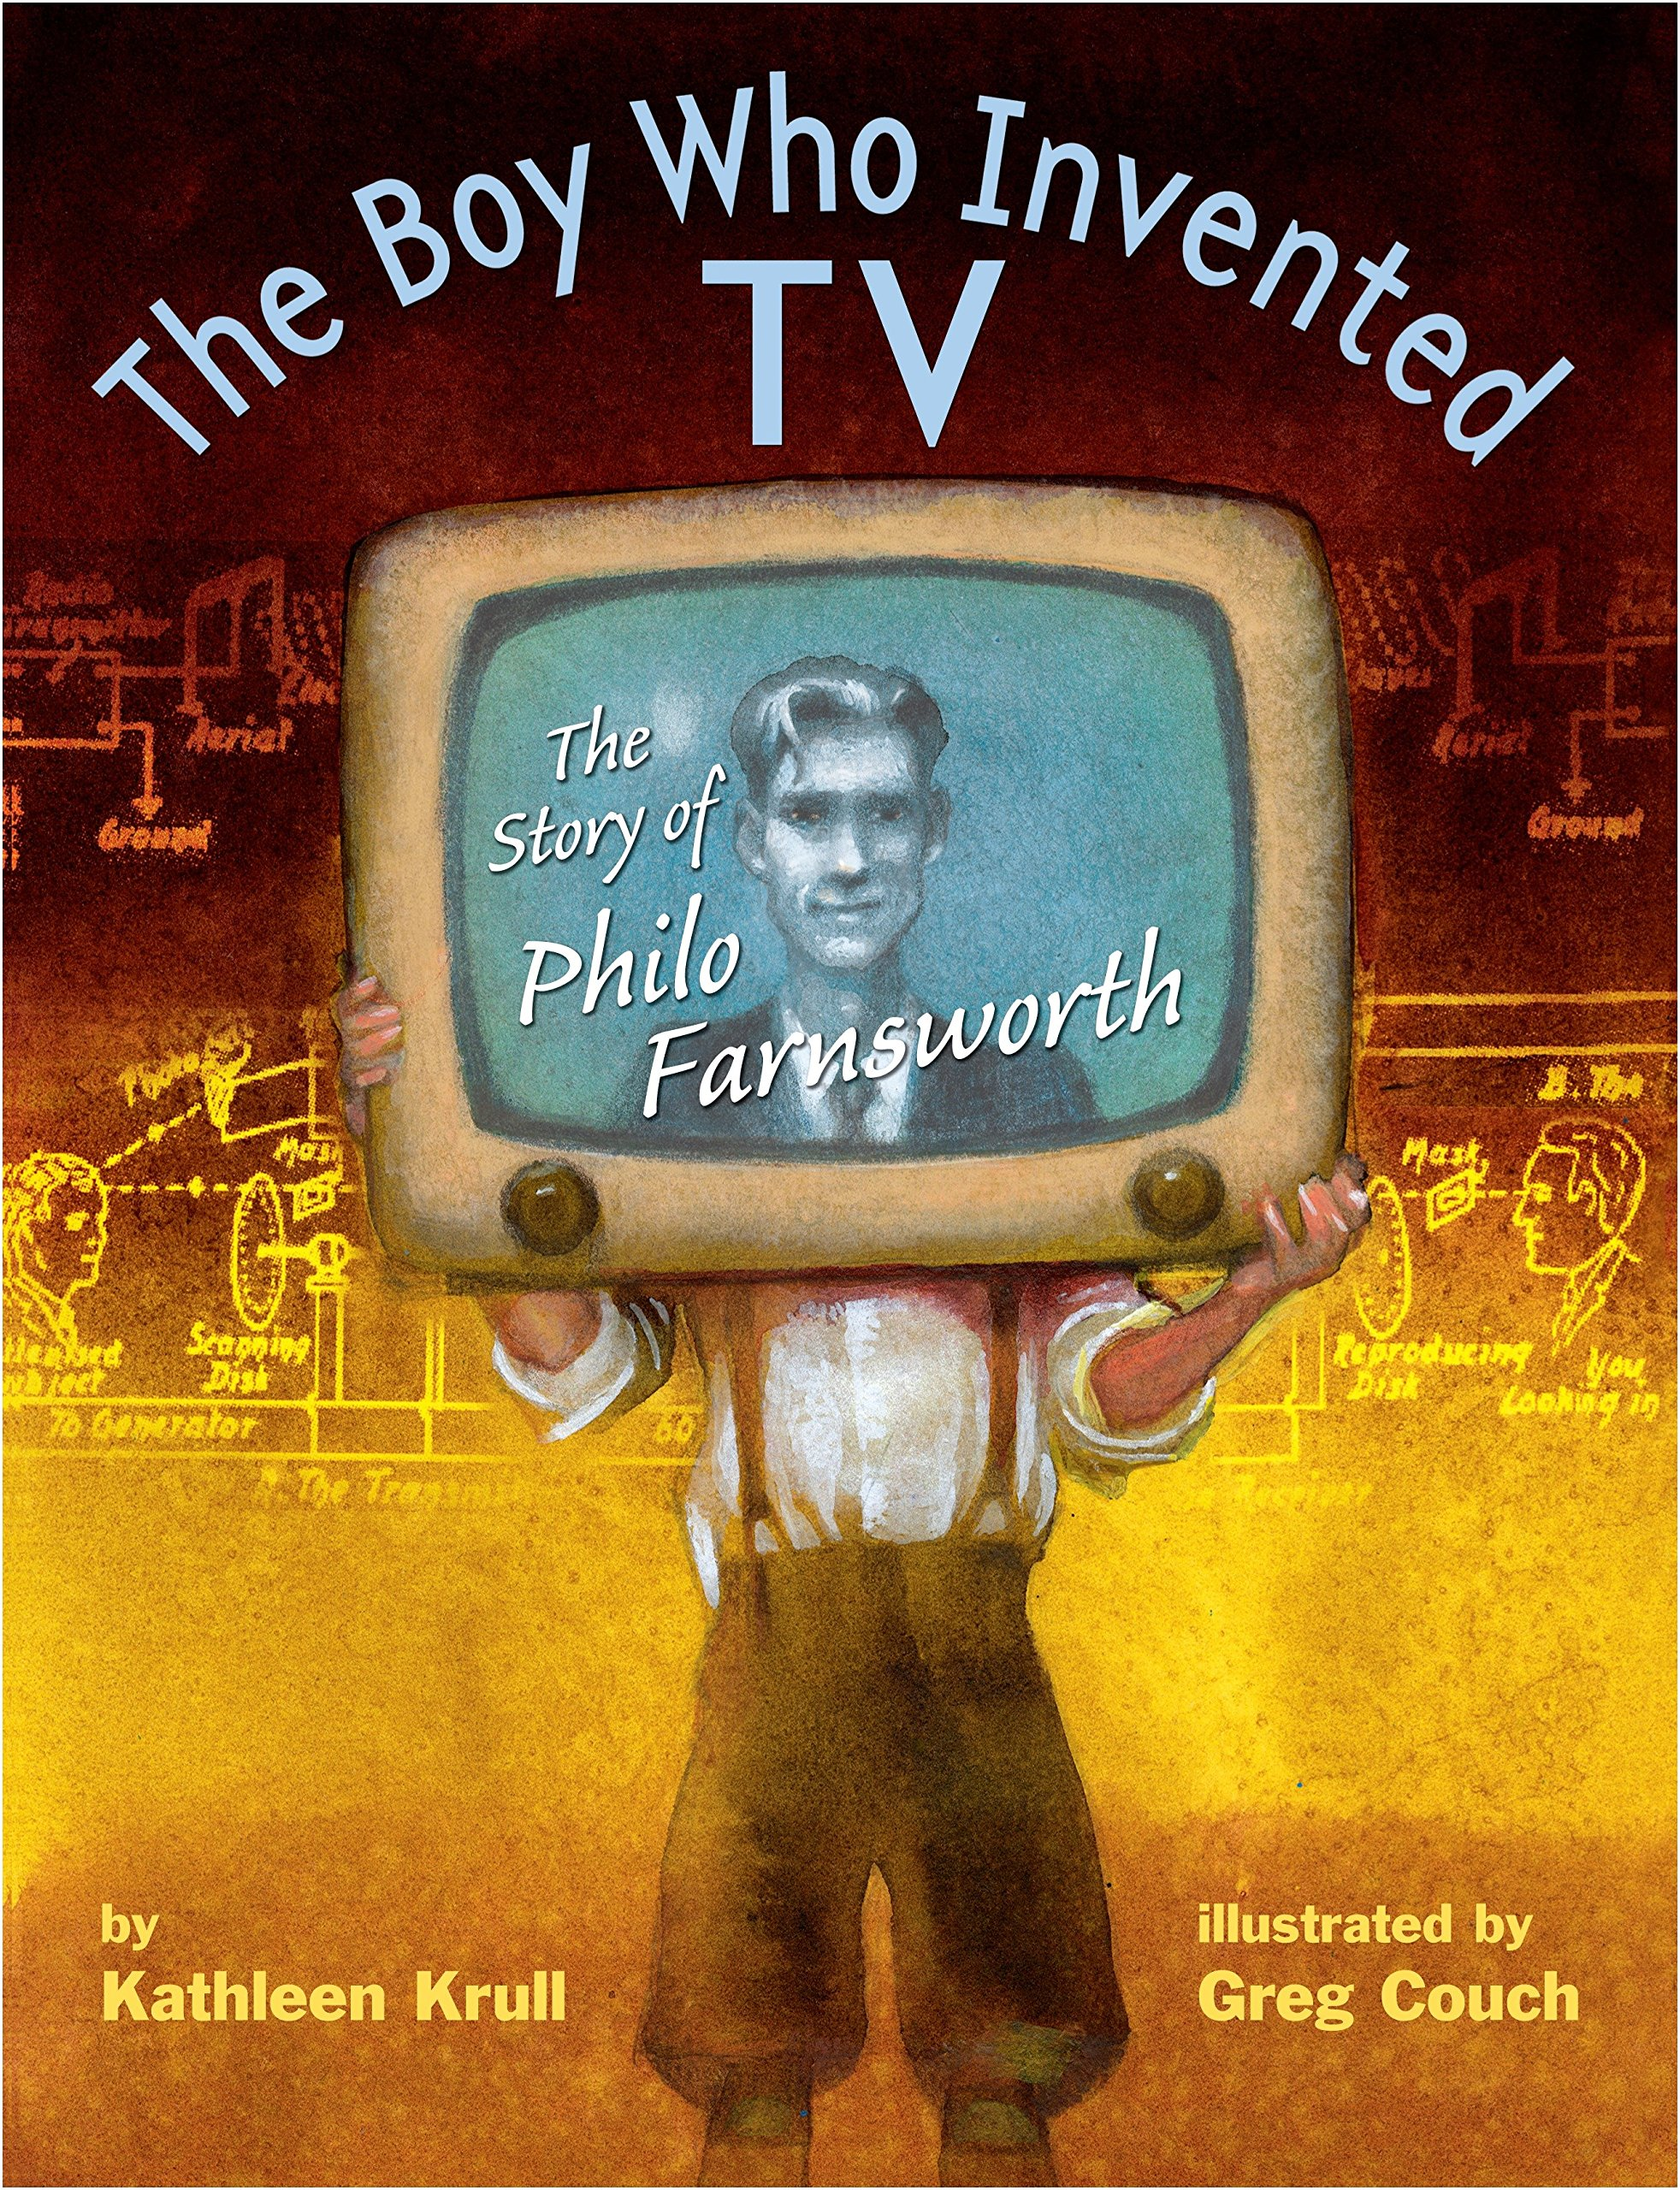 The Boy Who Invented TV: The Story of Philo Farnsworth by Knopf Books for Young Readers (Image #1)